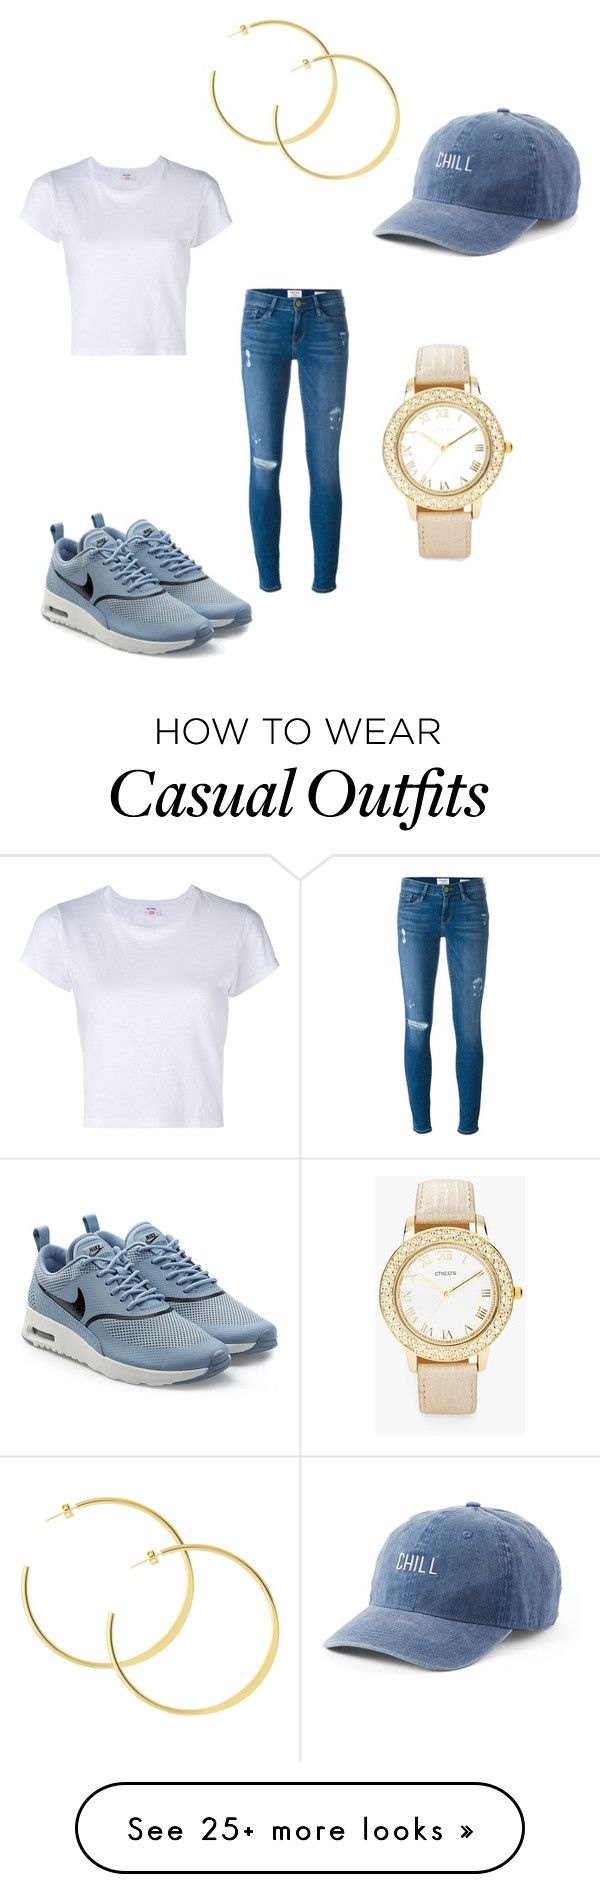 """Casually Chillin'"" by tainasanchez on Polyvore featuring Frame, RE/DONE, SO, NIKE and Chico's"